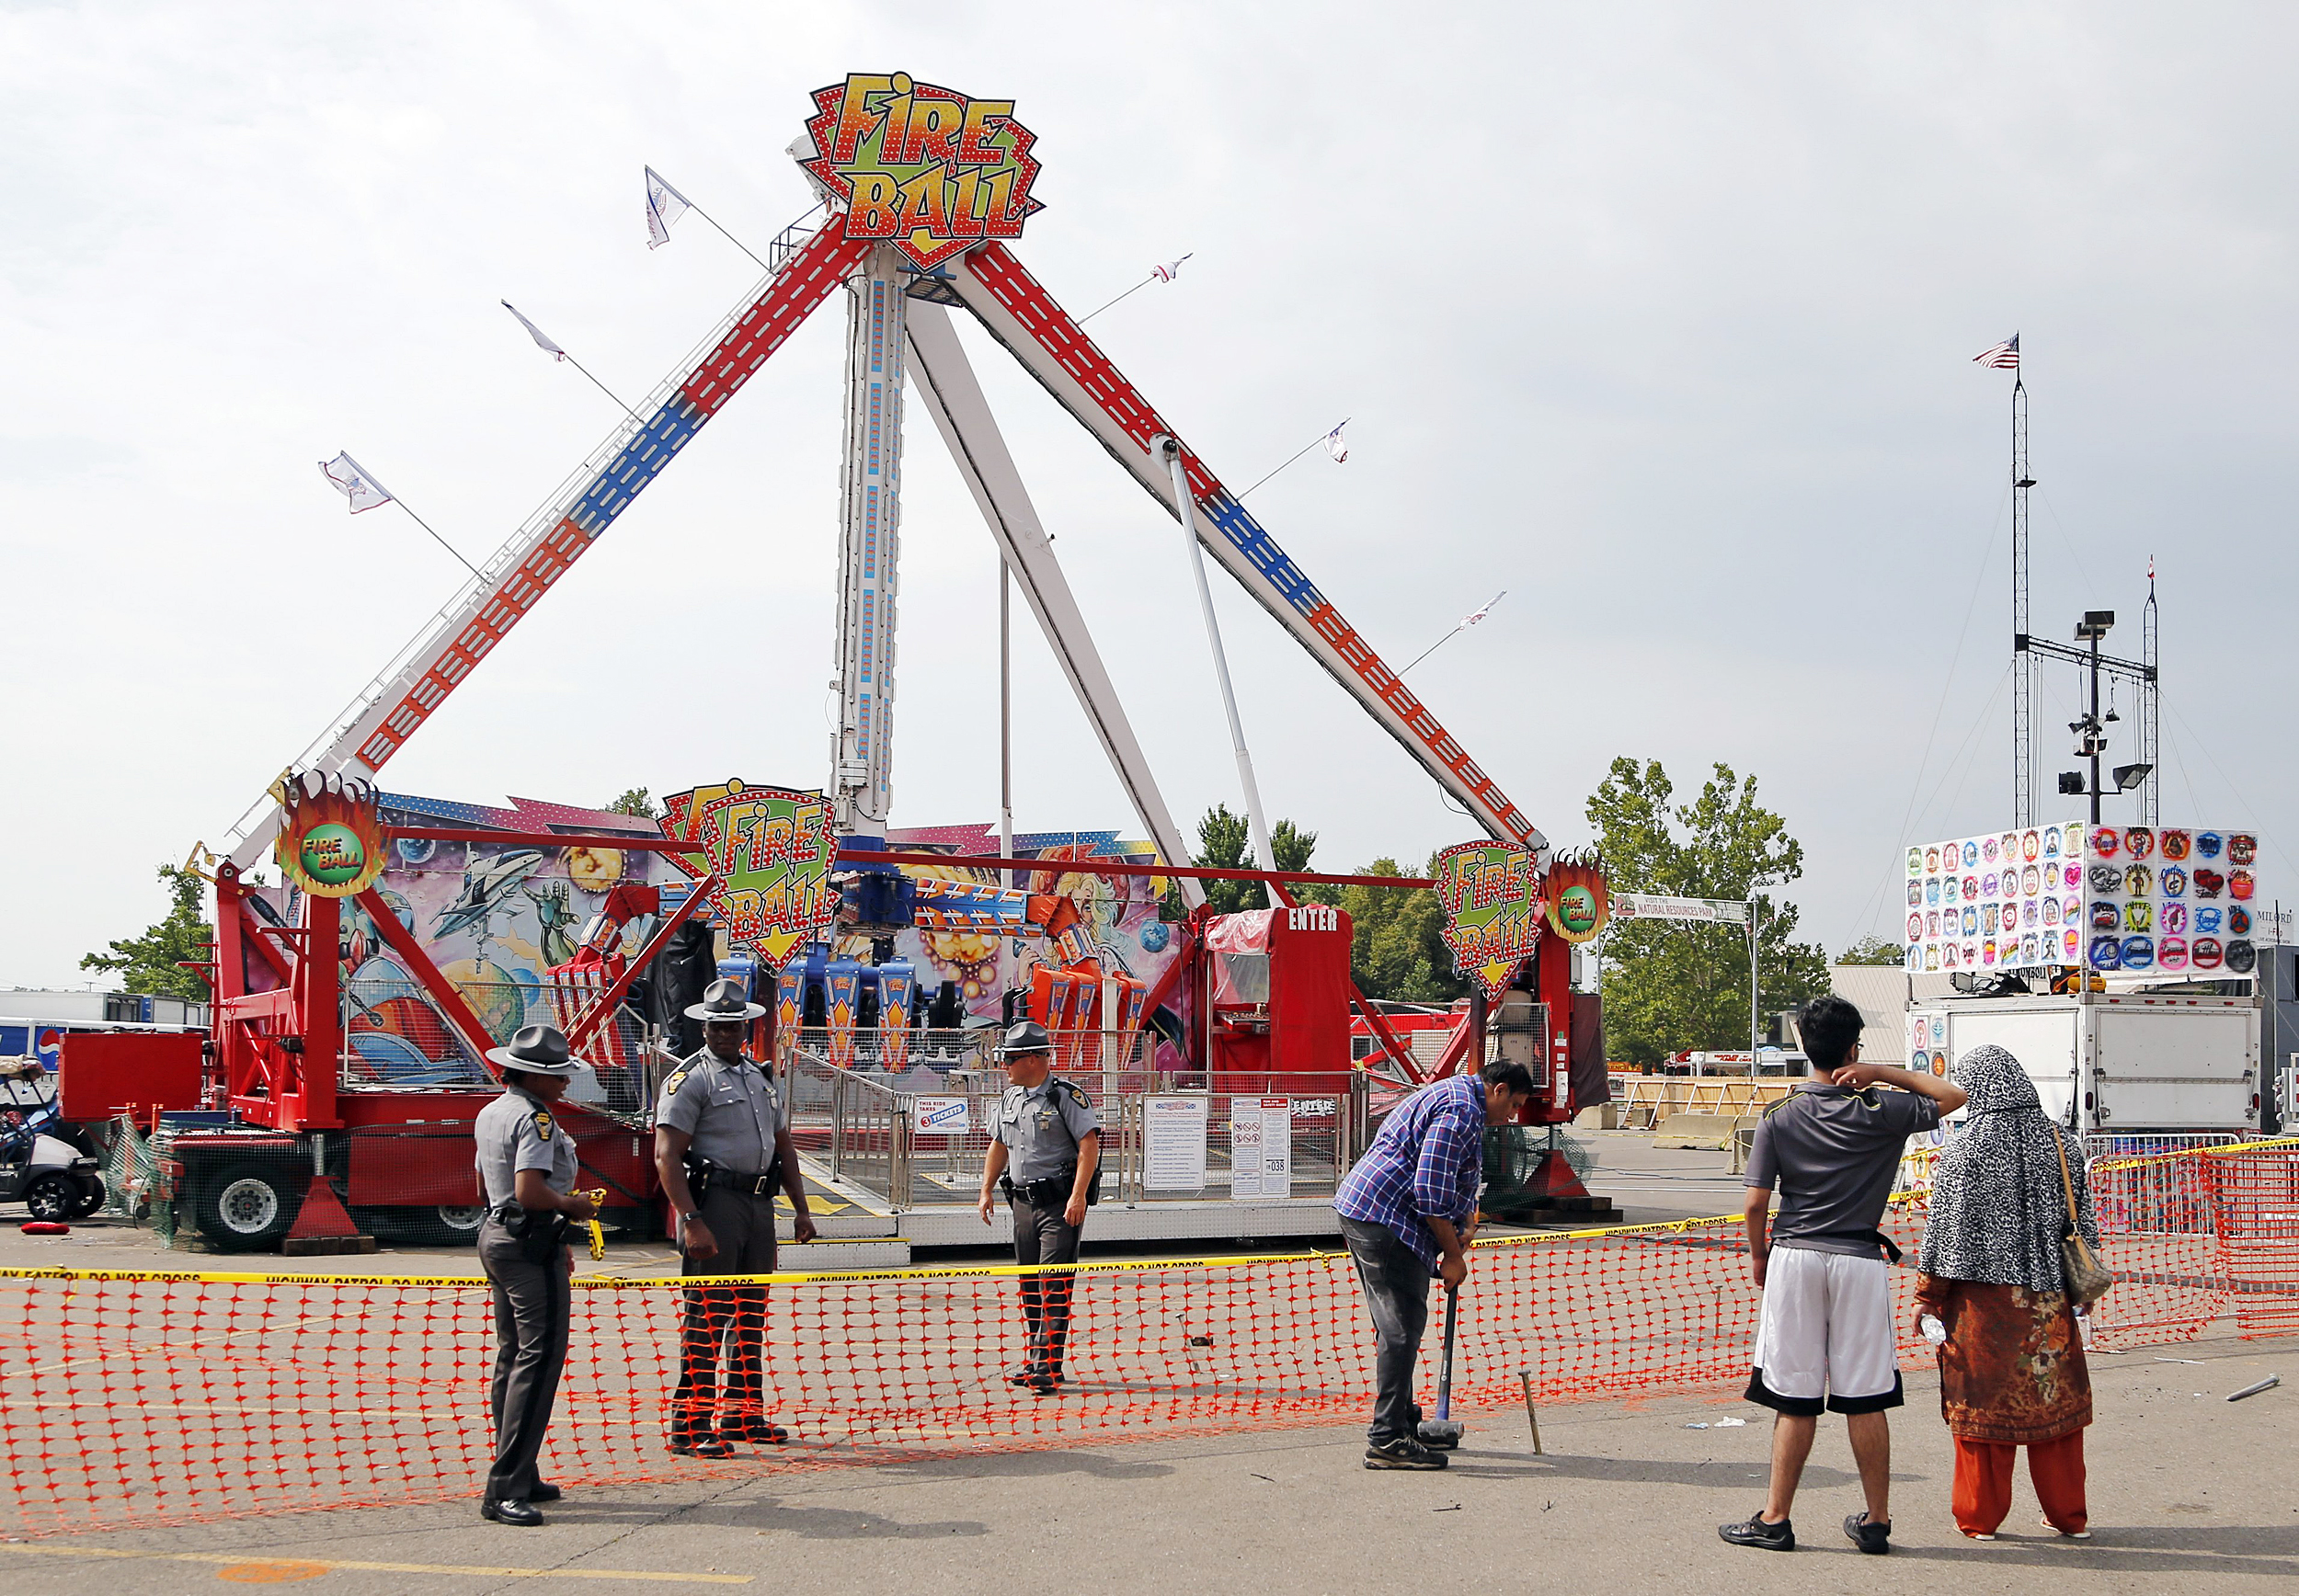 Number of accidents due to amusement park rides might be higher number of accidents due to amusement park rides might be higher than you think nbc news rubansaba